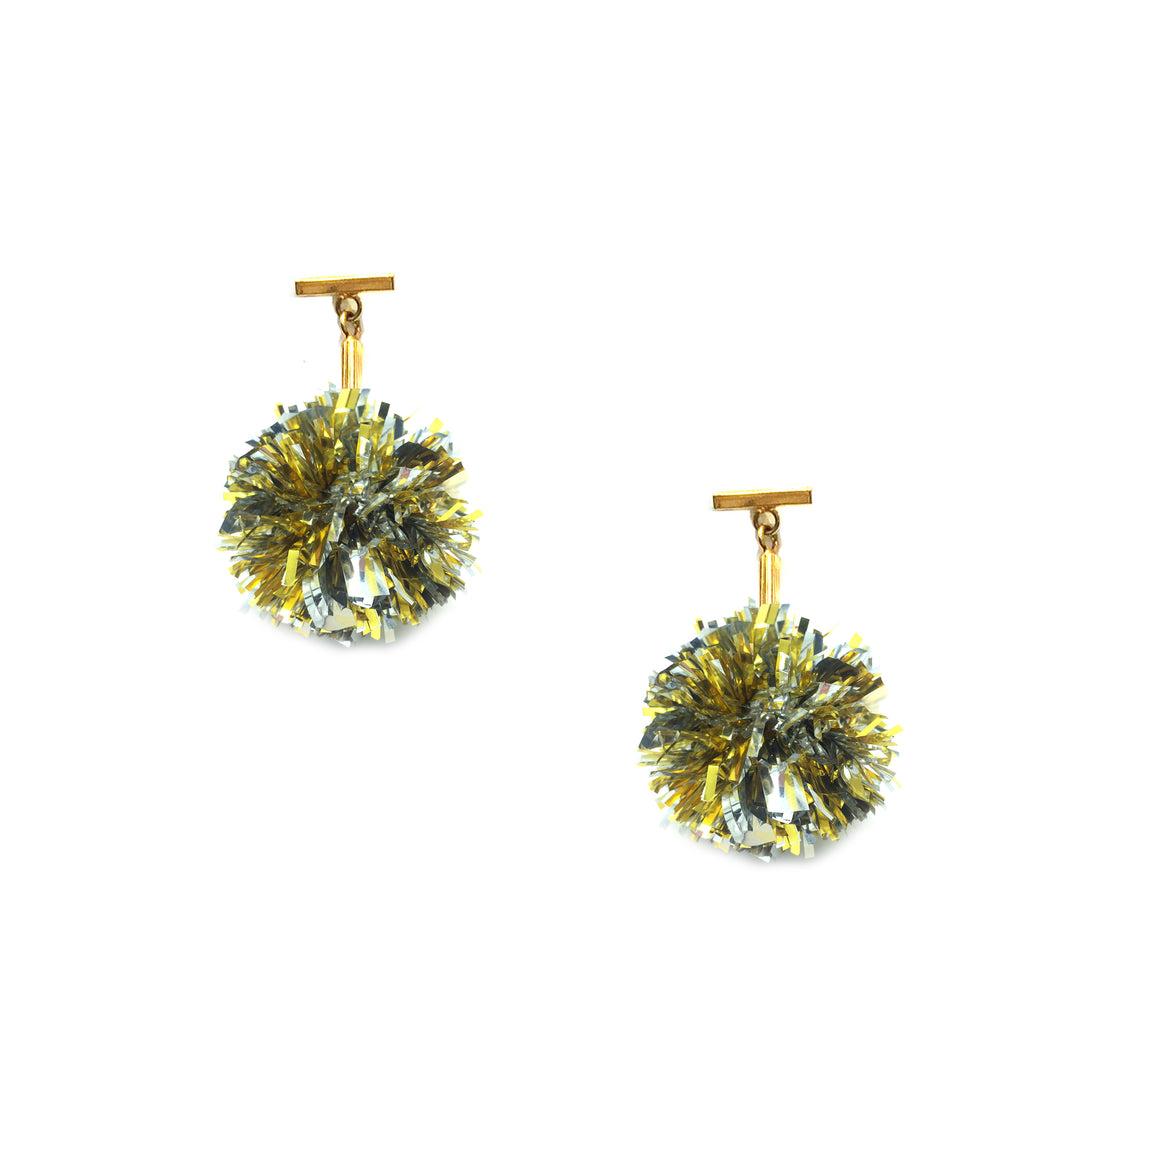 "Gold and Silver 1"" Lurex Pom Pom T Stud Earrings, Earrings, Tuleste, Tuleste"